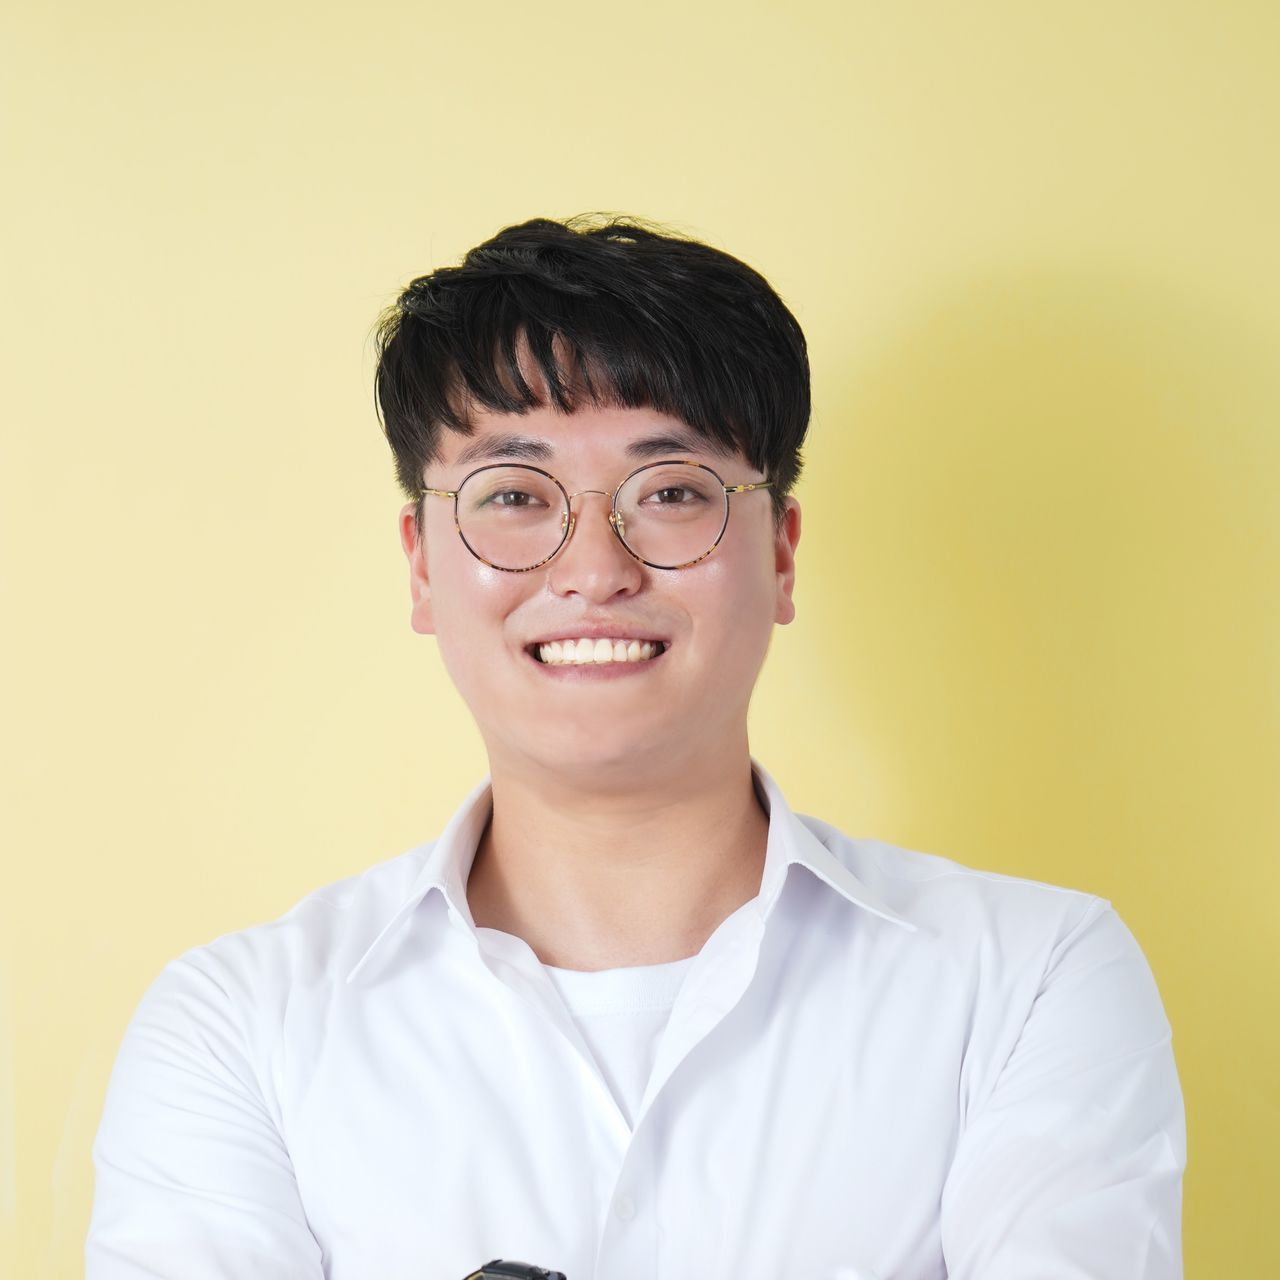 <b>Kim Seong Ho</b><br>Assistant Branch Director<br>